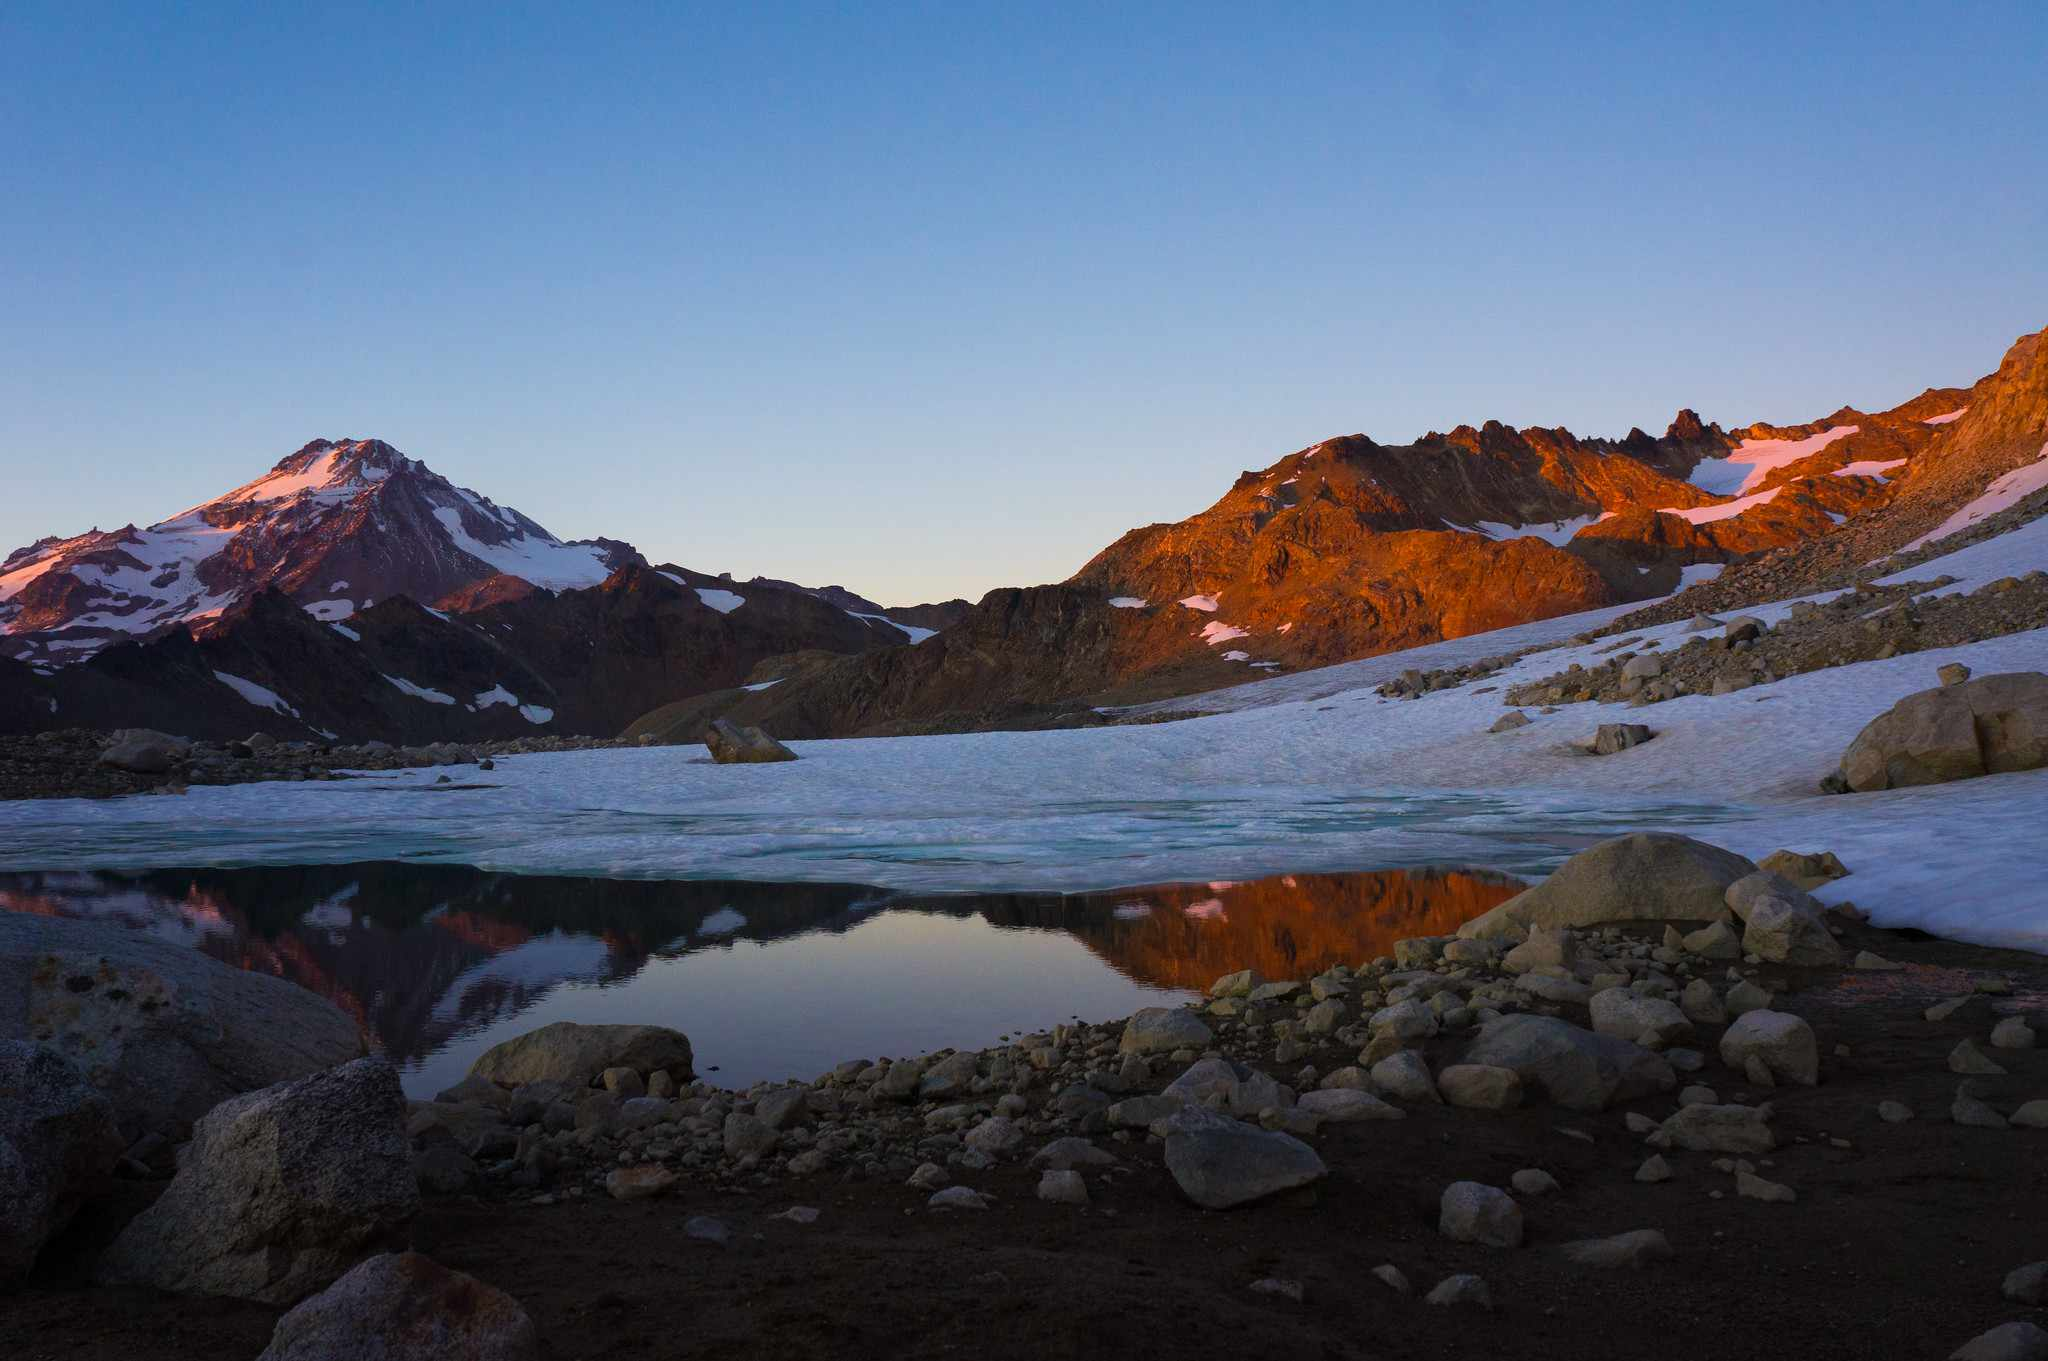 Alpenglow on White Chuck Glacier and surrounding peaks